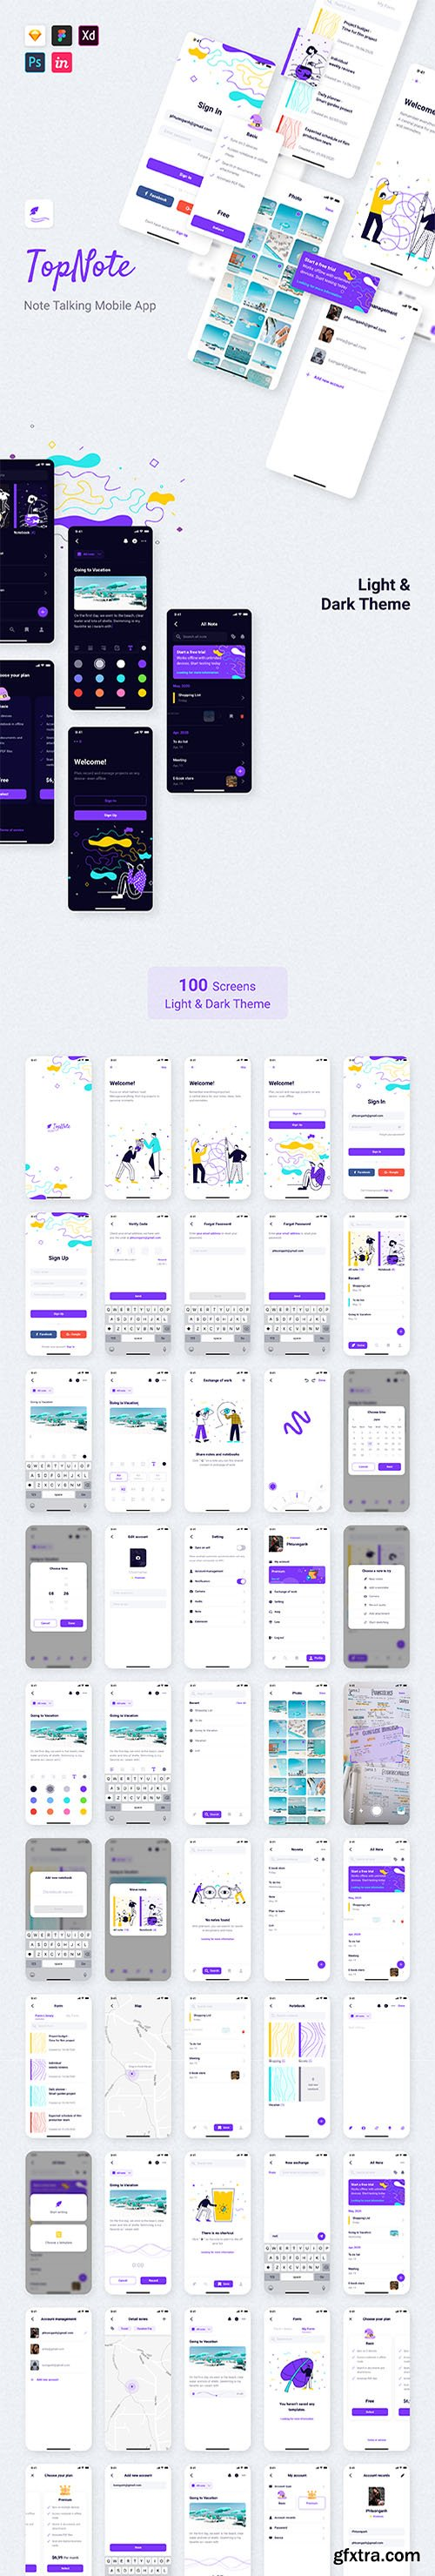 TopNote - Note Talking Mobile App